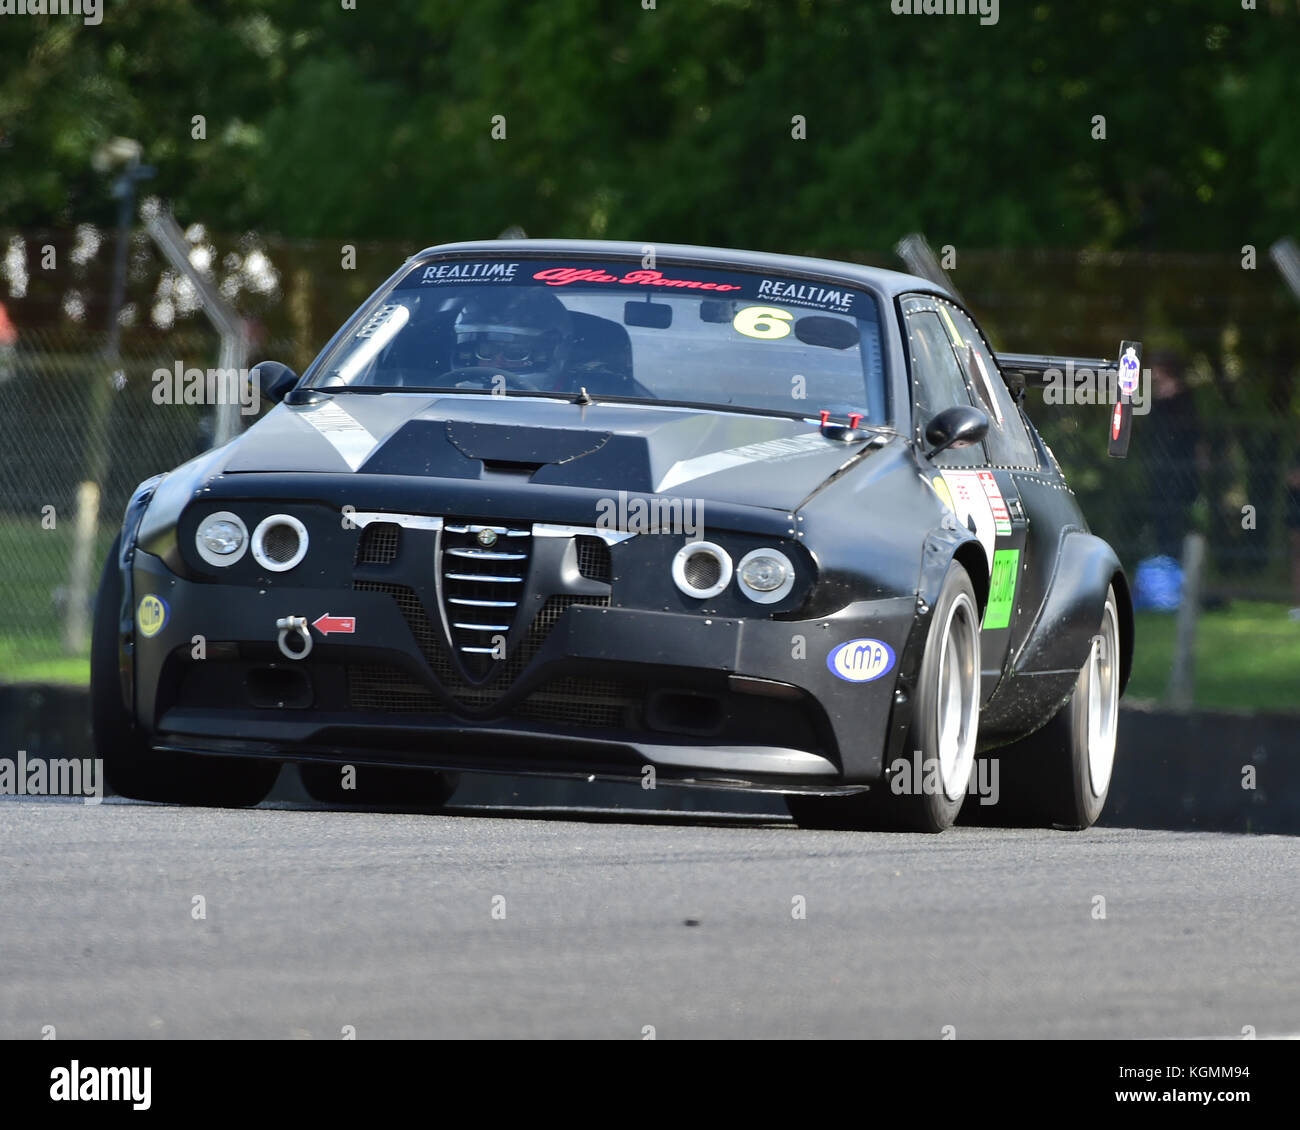 Ian Stapleton Alfa Romeo Alfetta Gtv Italiano Vs Inglese Allcomers Stock Photo Alamy